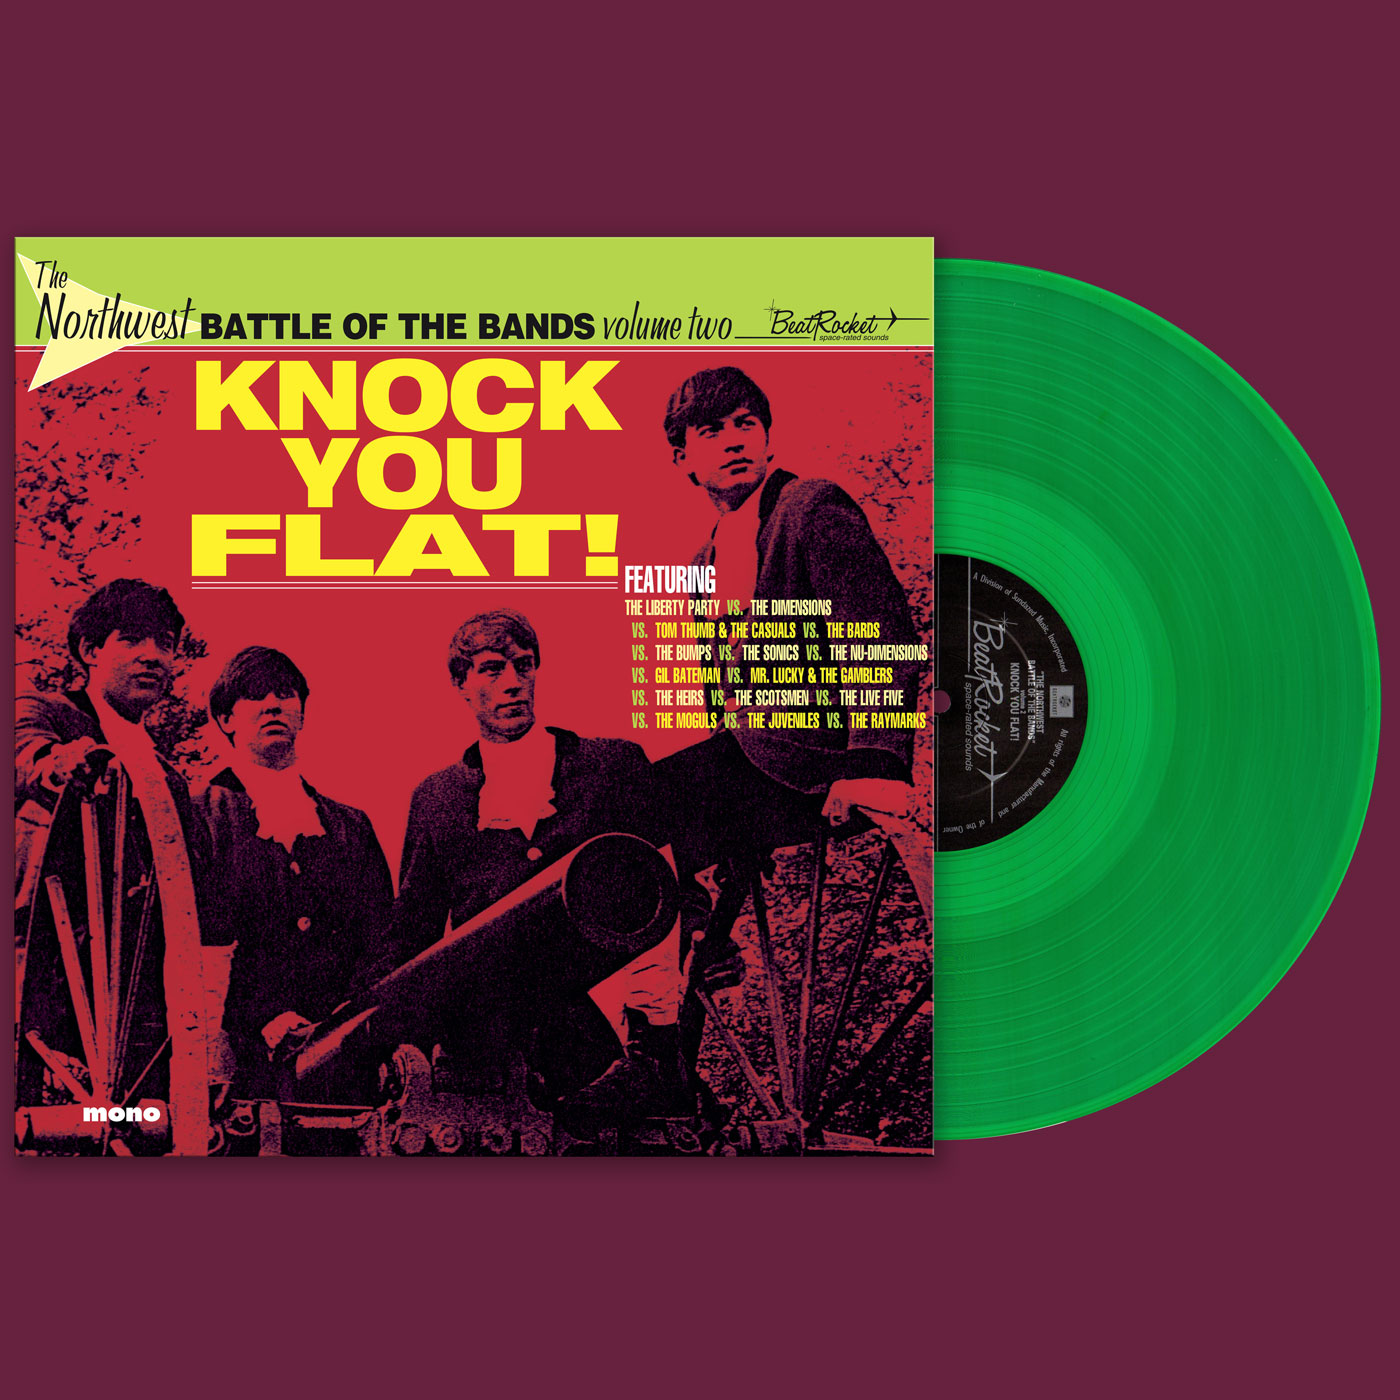 Various Artists - Northwest Battle Of The Bands - Vol. 2 - Knock You Flat! - LP